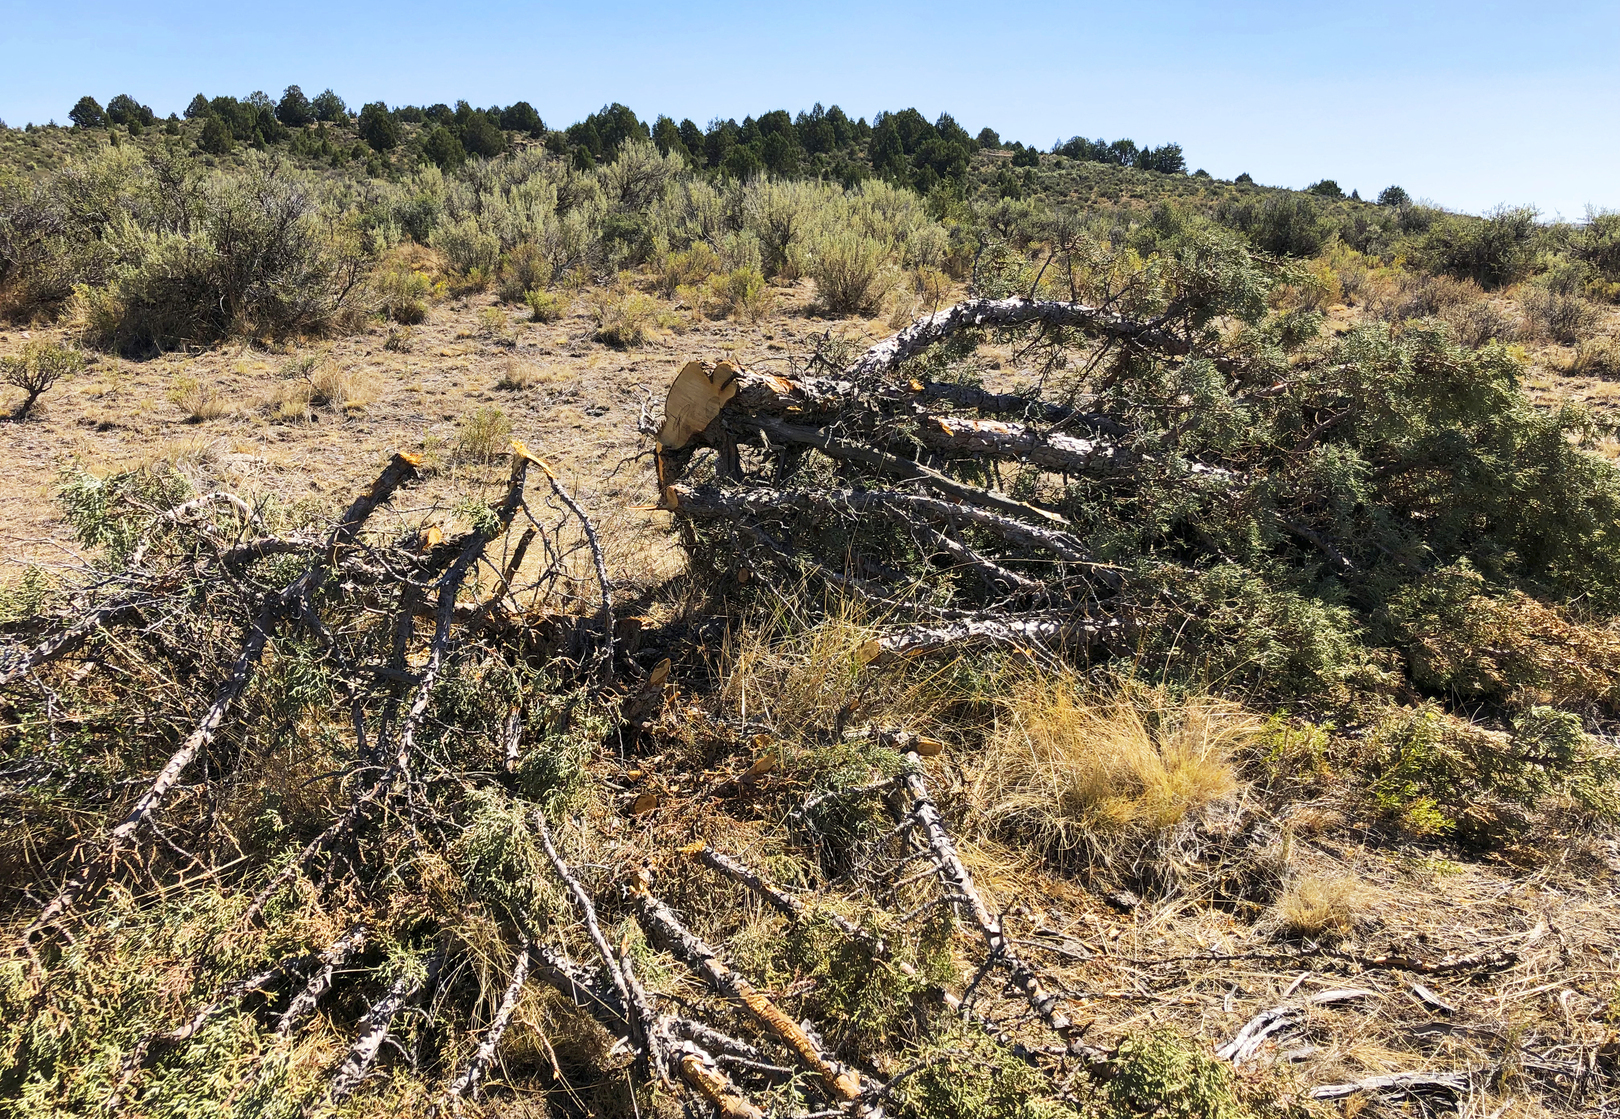 In this Aug. 15, 2019, file photo, is a juniper tree cut down as part of a giant project to remove junipers encroaching on sagebrush habitat needed by imperiled sage grouse in southwestern Idaho. (AP Photo/Keith Ridler, File)